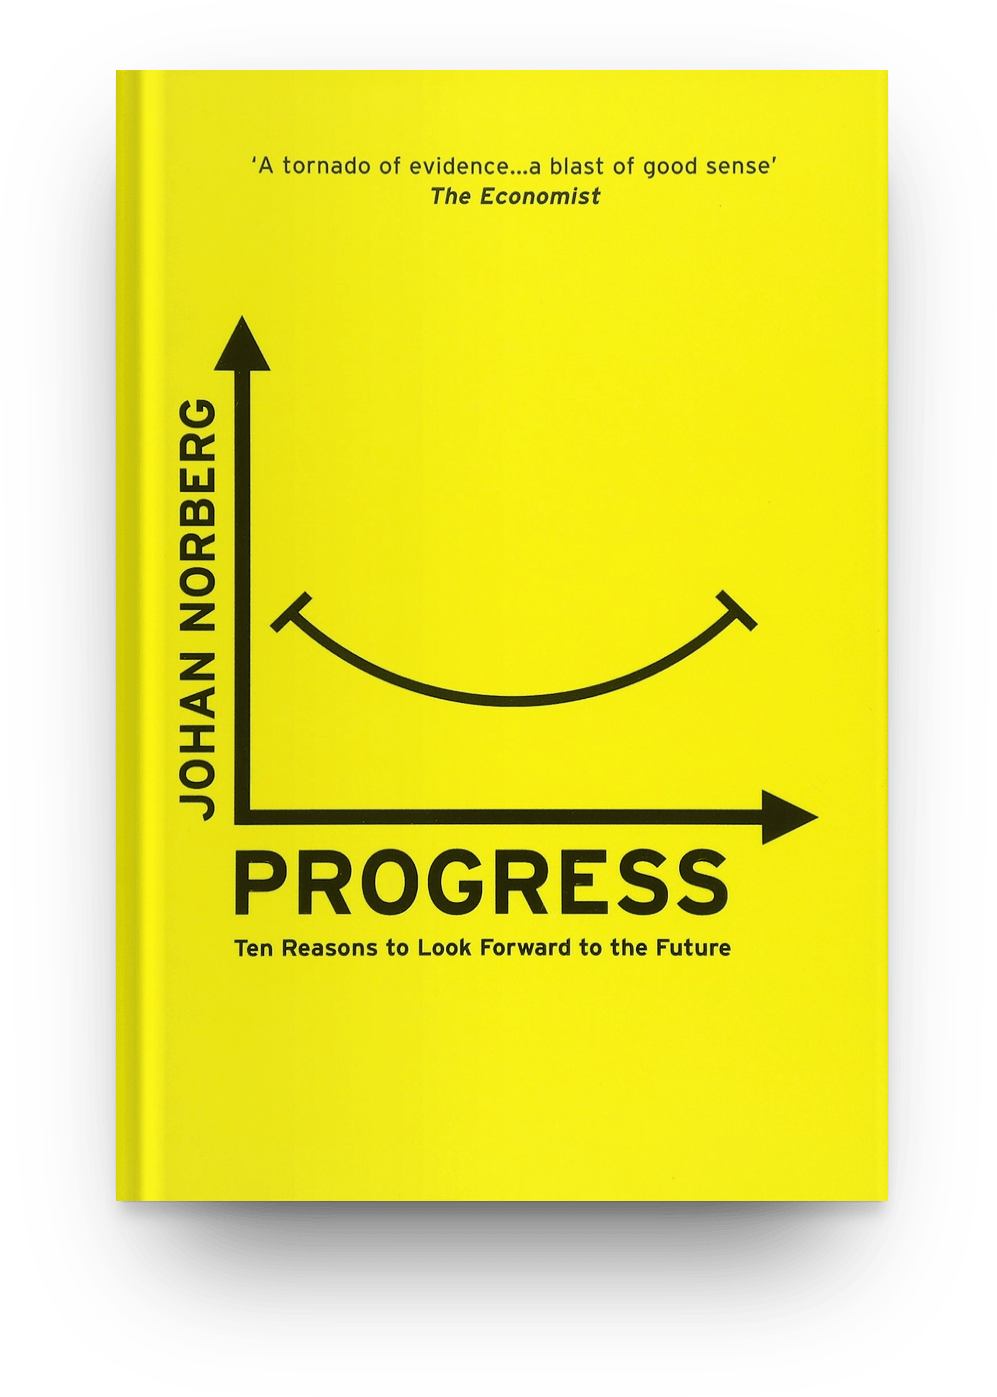 Progress : Ten Reasons to Look Forward to the Future by Johan Norberg (2016)